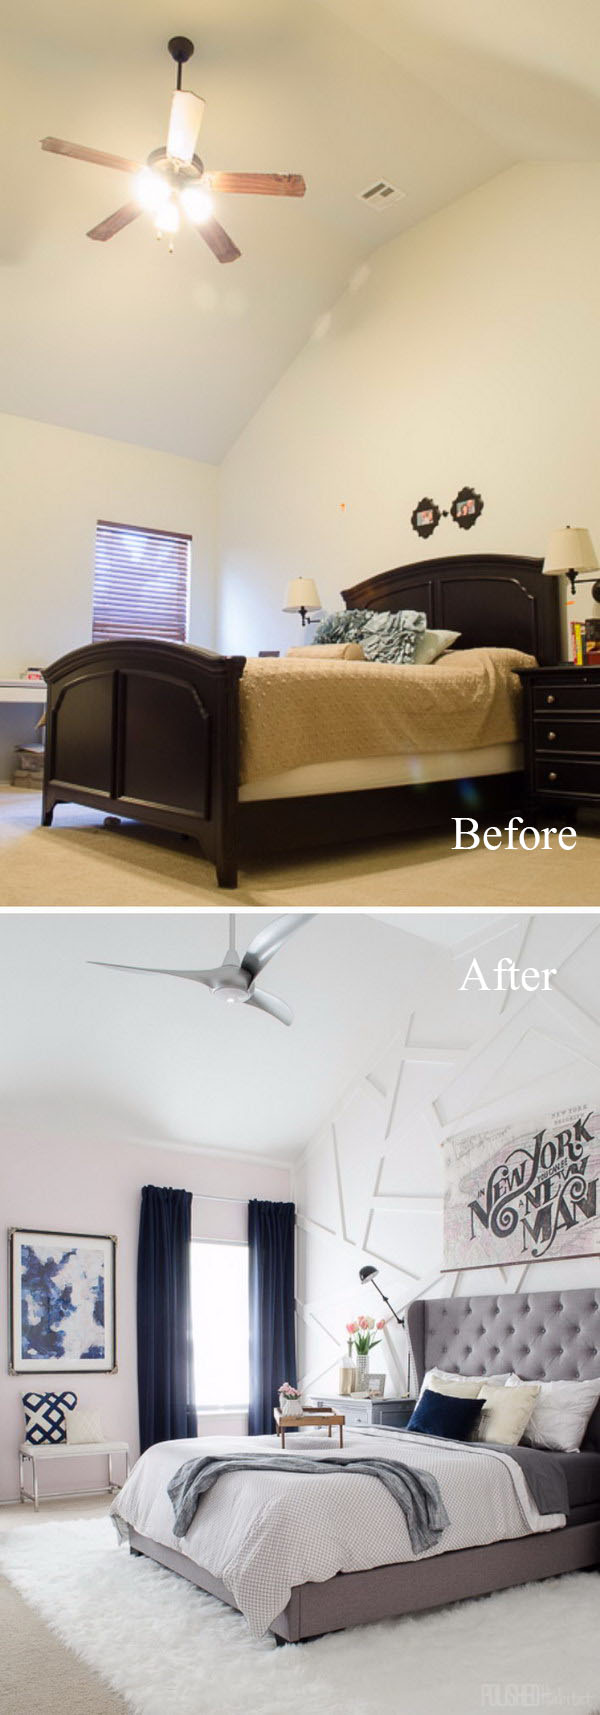 creative ways to make your small bedroom look bigger hative 21258 | 30 31 great ways to make your small bedroom look bigger